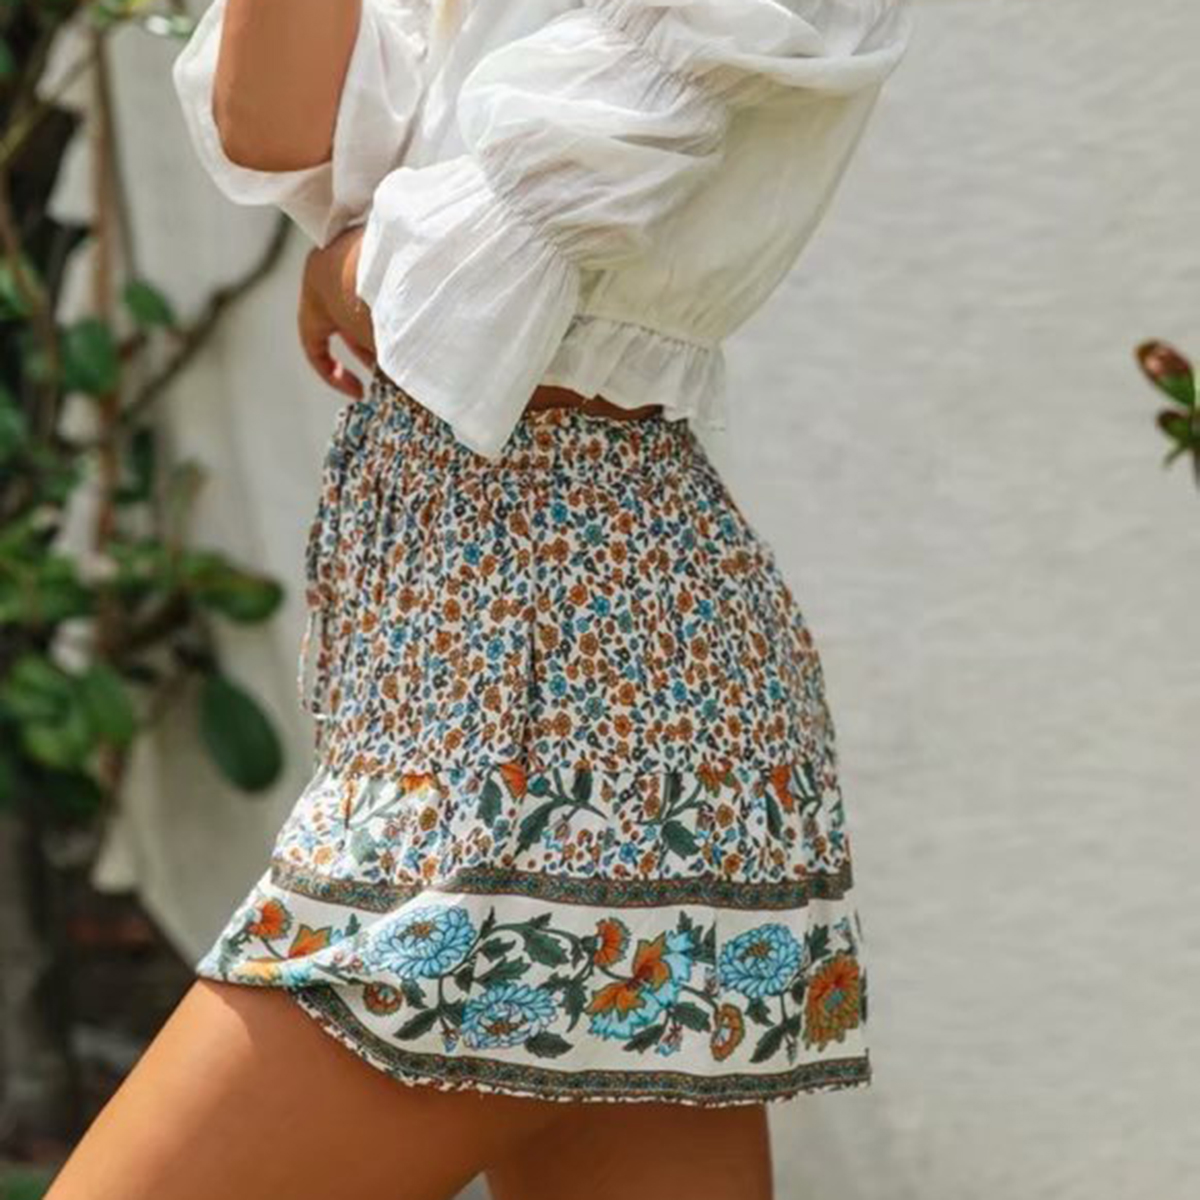 Hippie Summer Beach Wear Floral Printed Shorts High Waist Elastic Vintage Short Feminino 2020 Loose Casual Boho Women Shorts